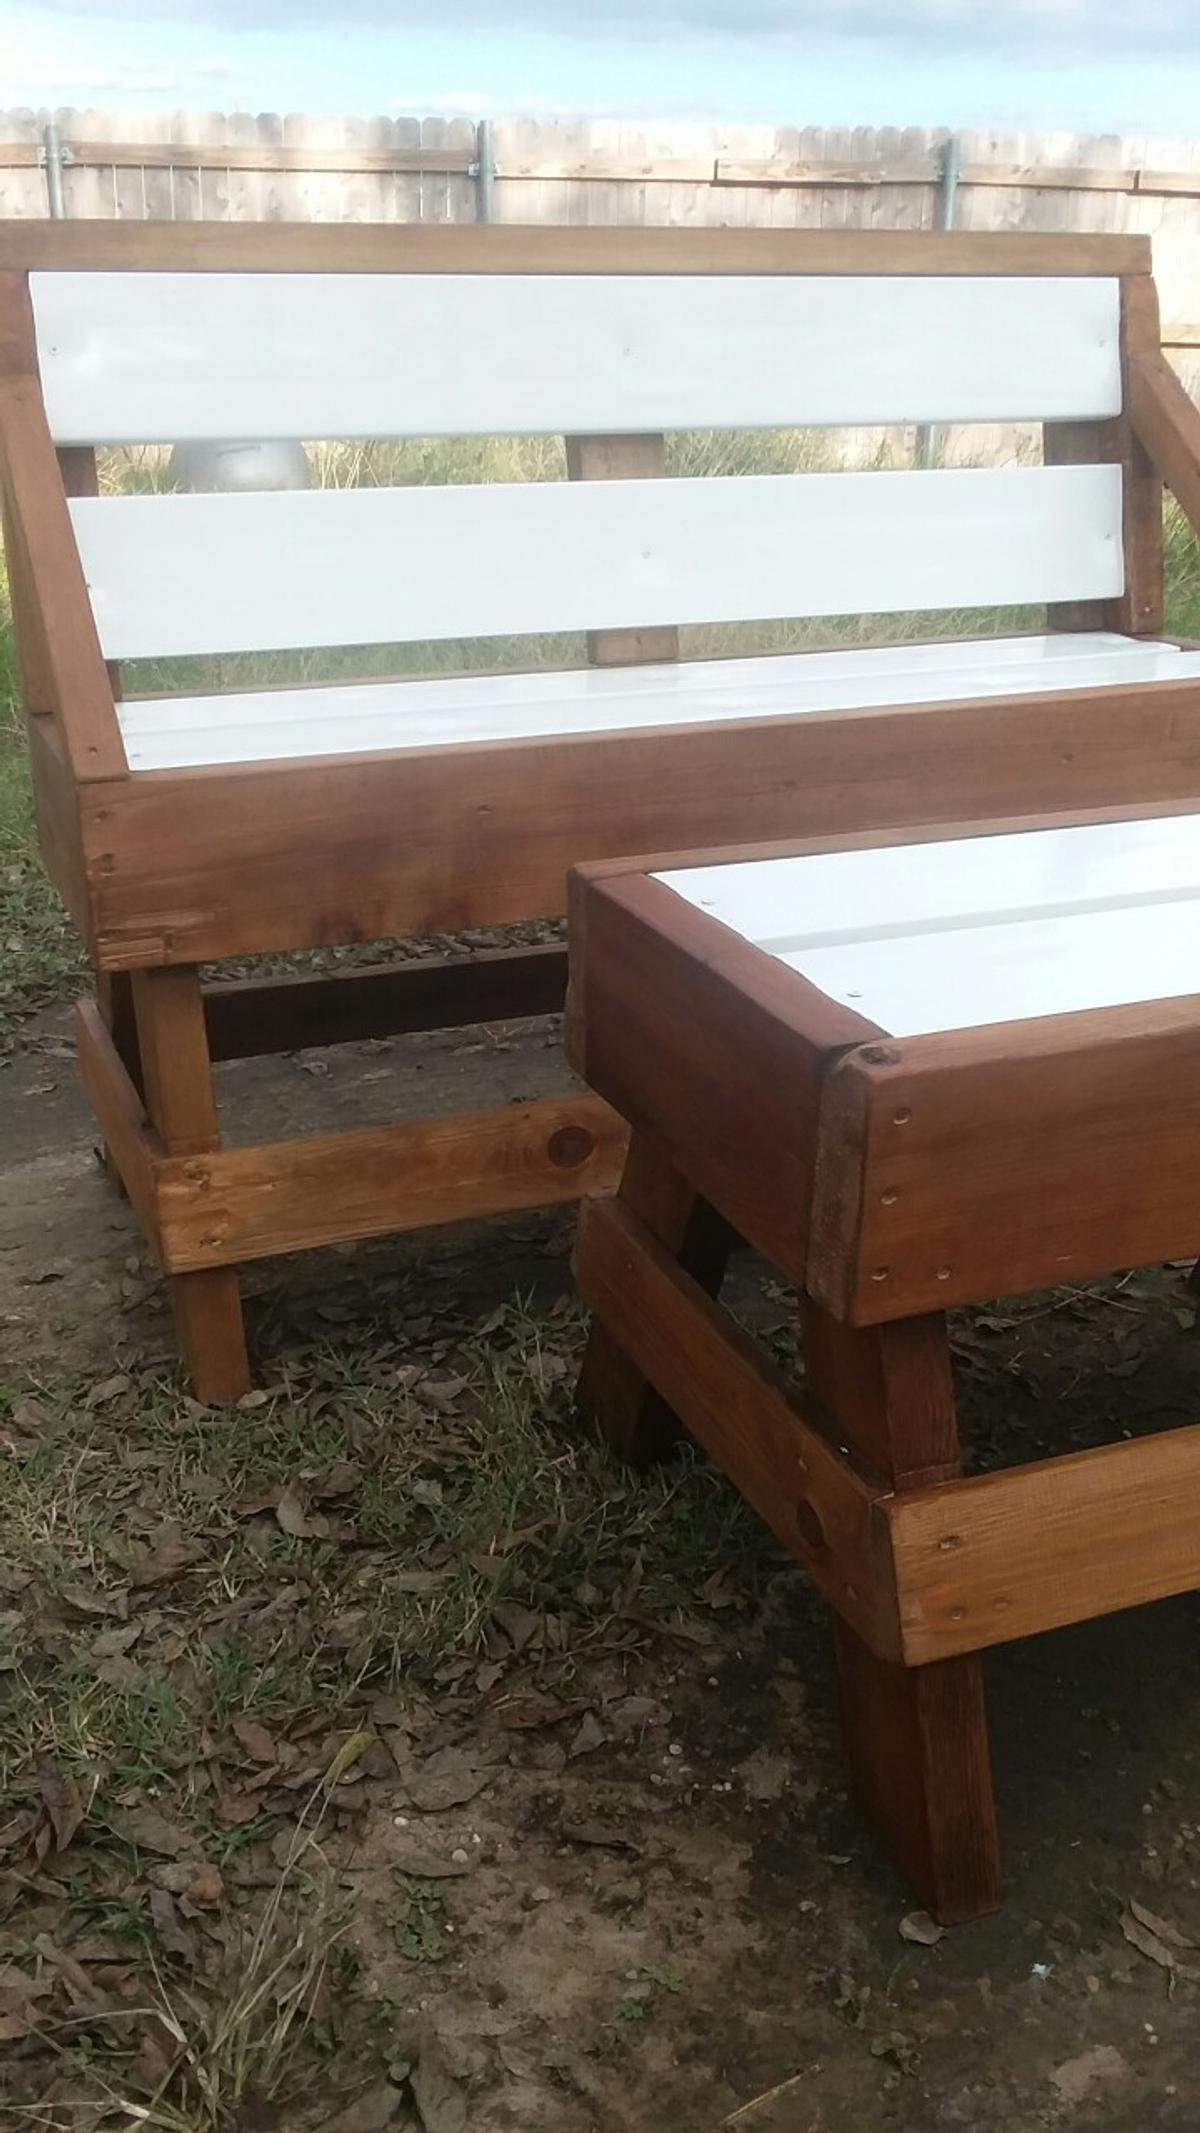 Farm style homemade cedar bench and table. Made from reclaimed cedar and has white vynl inserts. 140$ obo